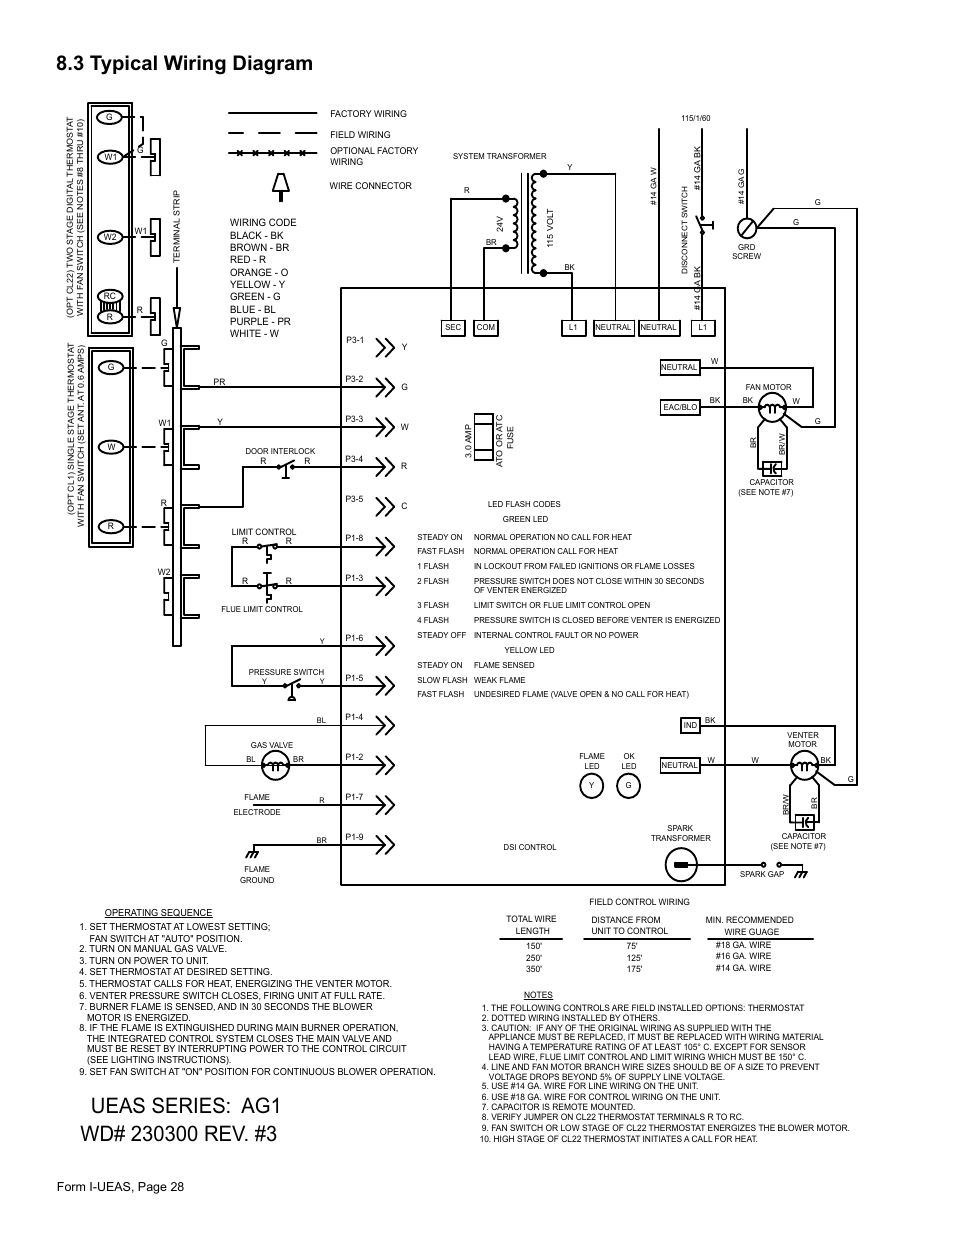 Heater Wiring Diagram On Reznor Electric Unit Heater Wiring Diagram